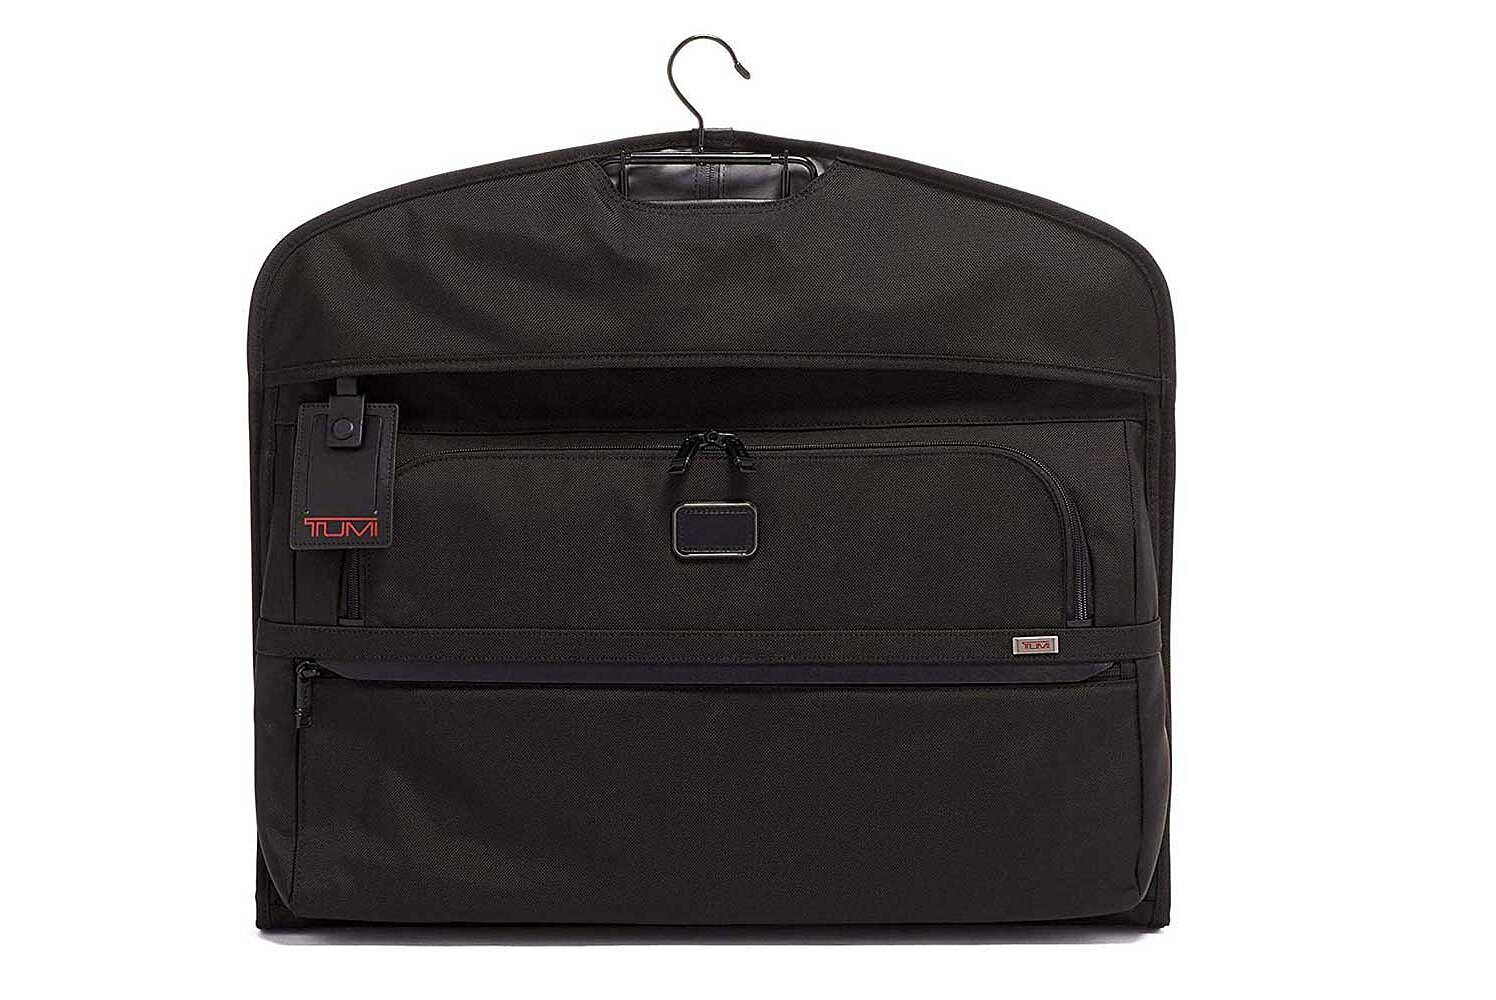 The Best Garment Bags For Travel